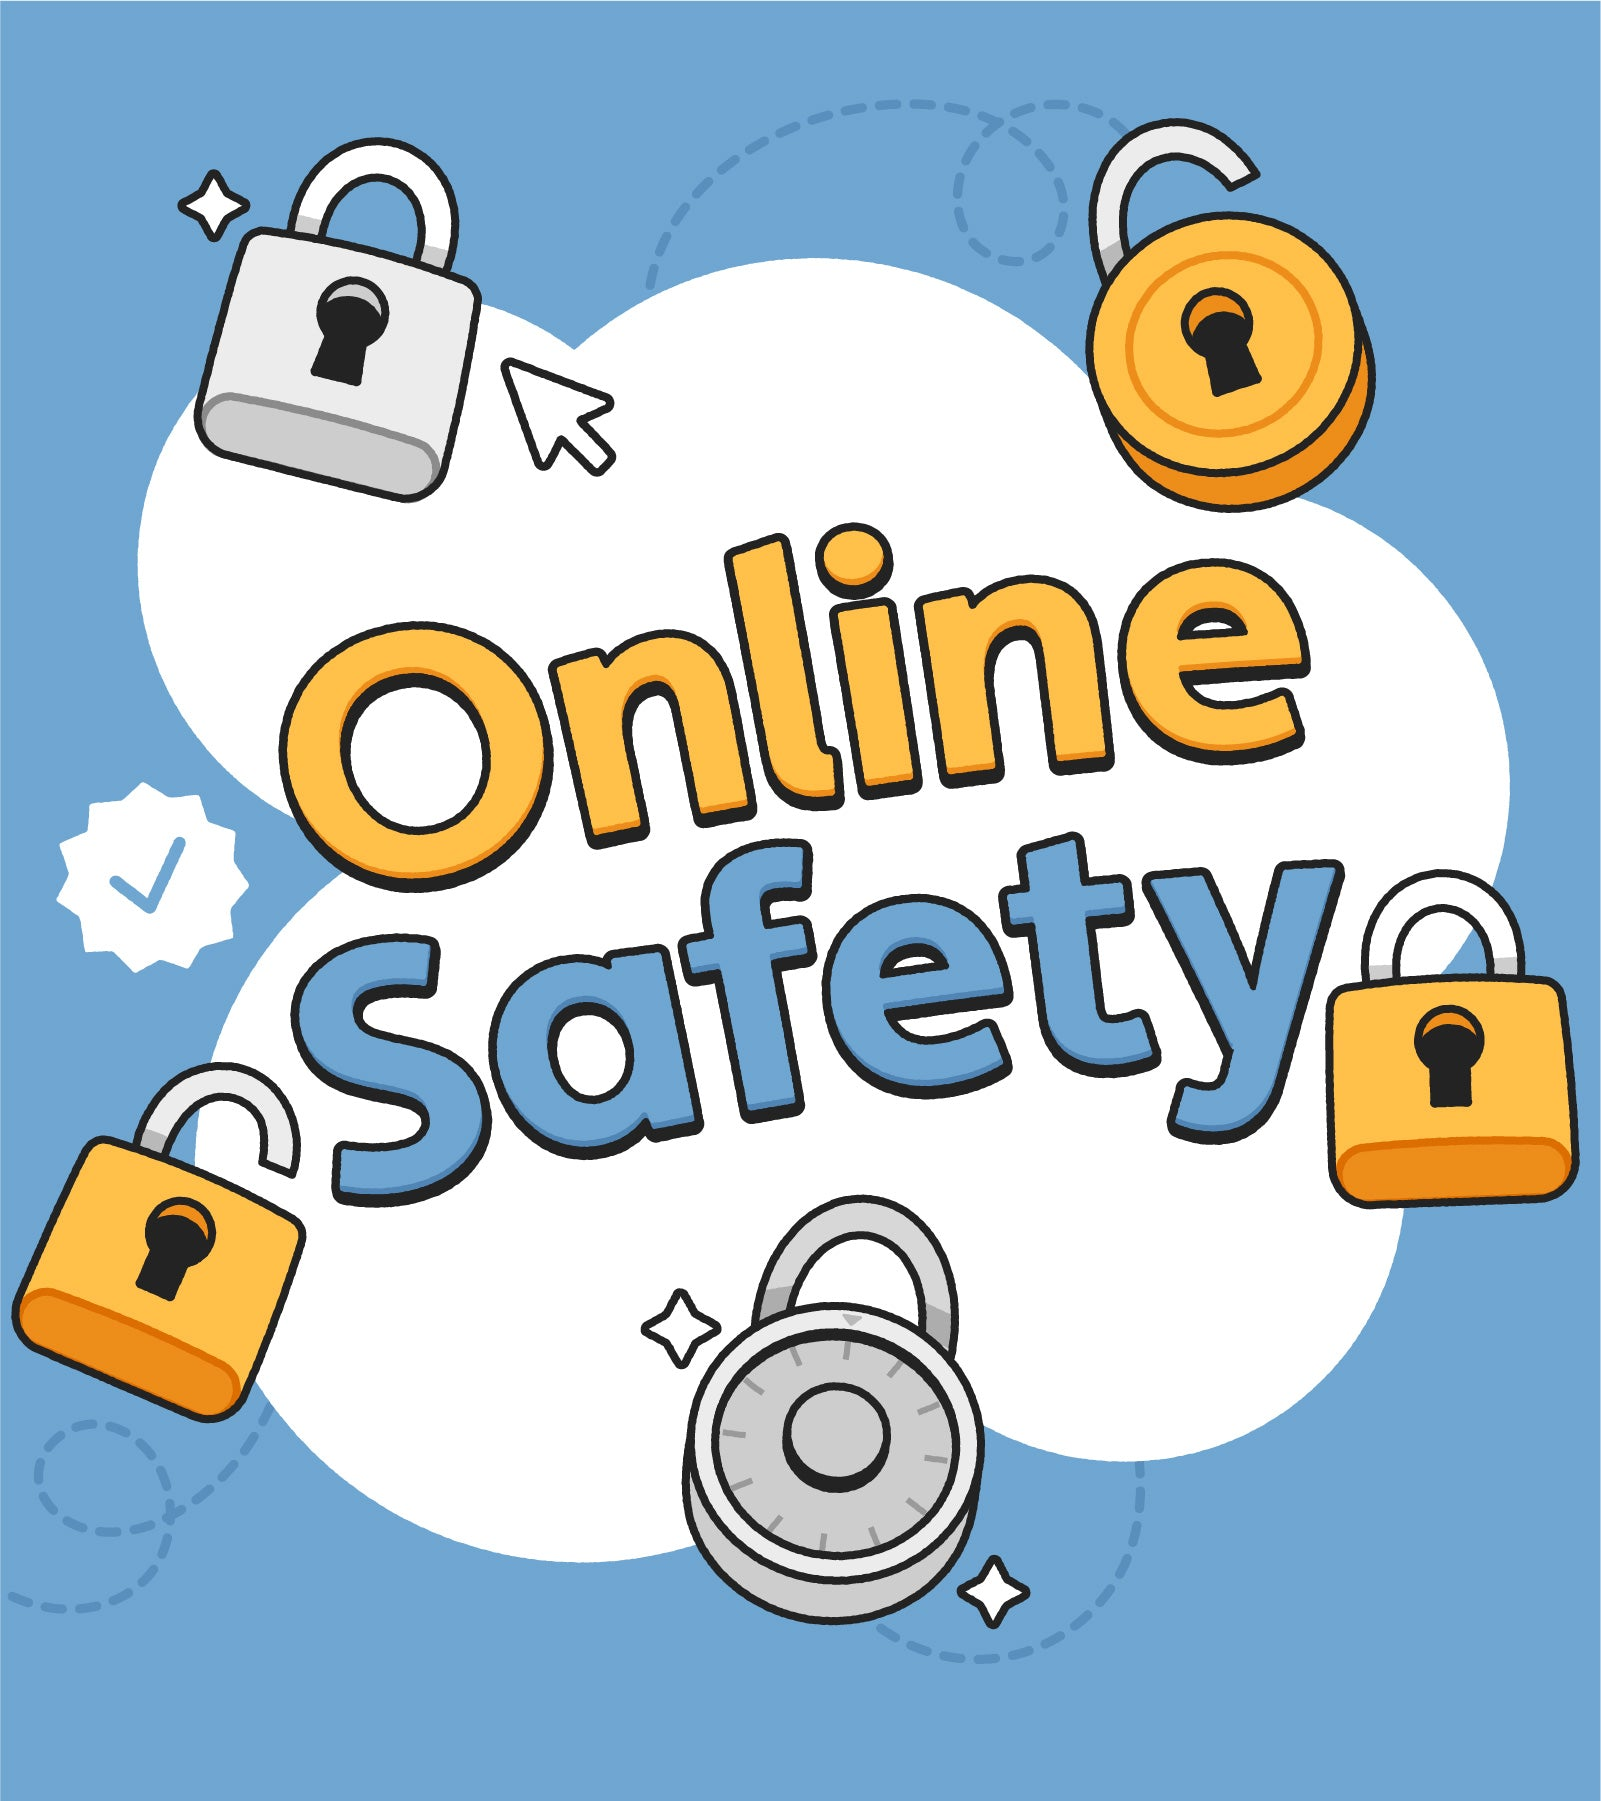 The words Online Safety surrounded by illustrated locks of various designs and colors